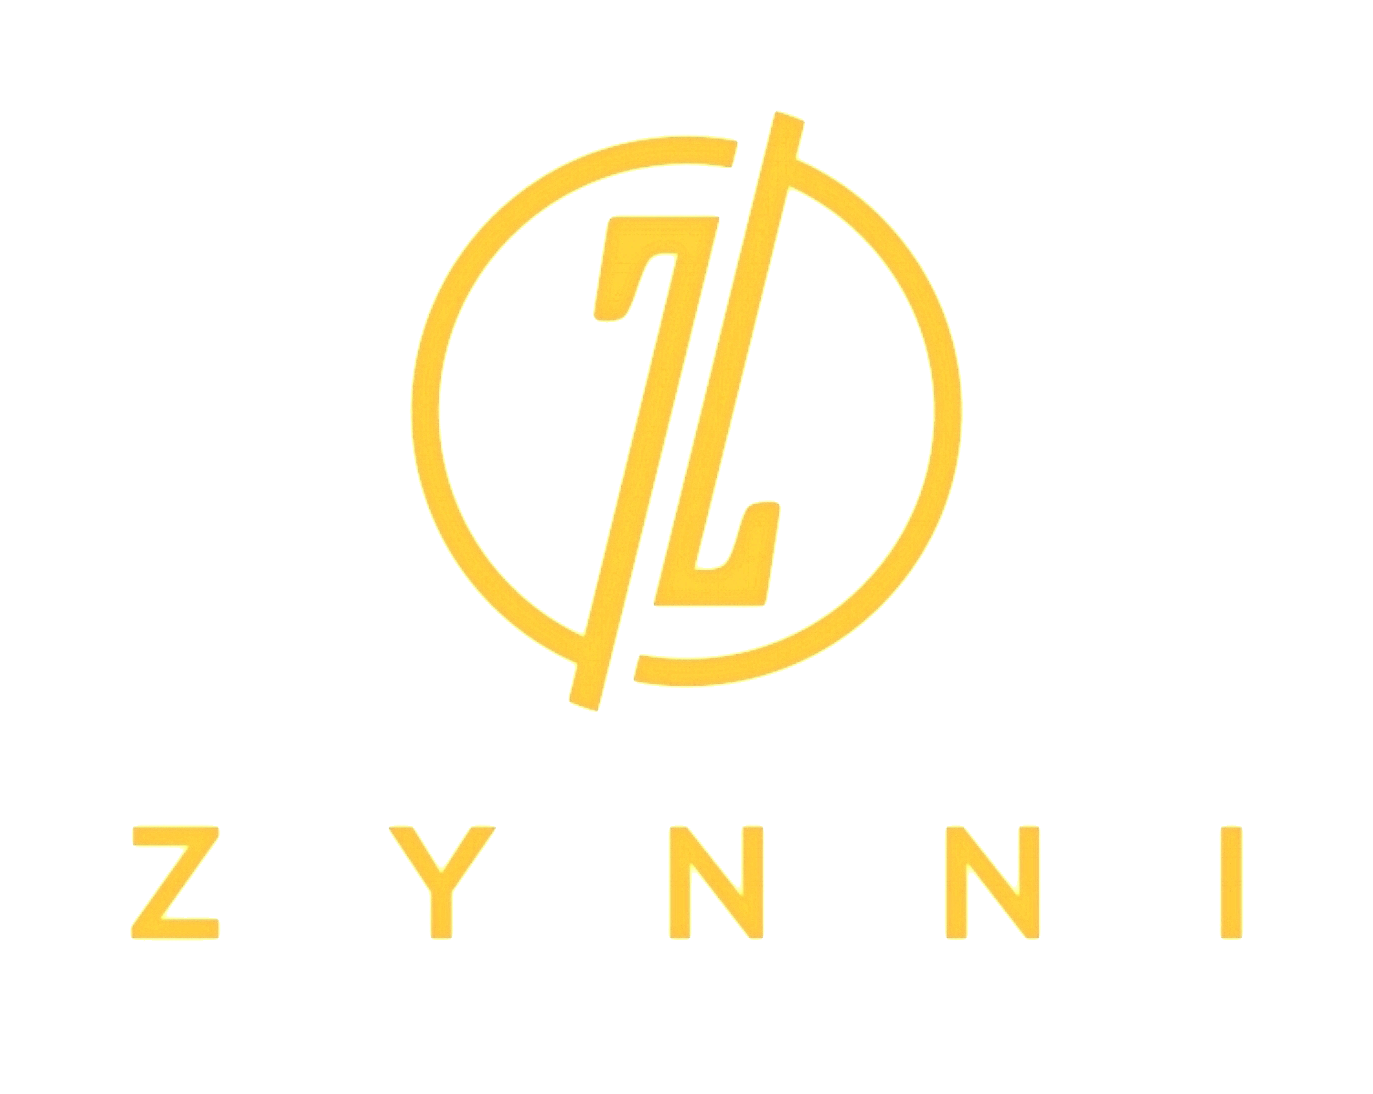 ZYNNI WELCOME